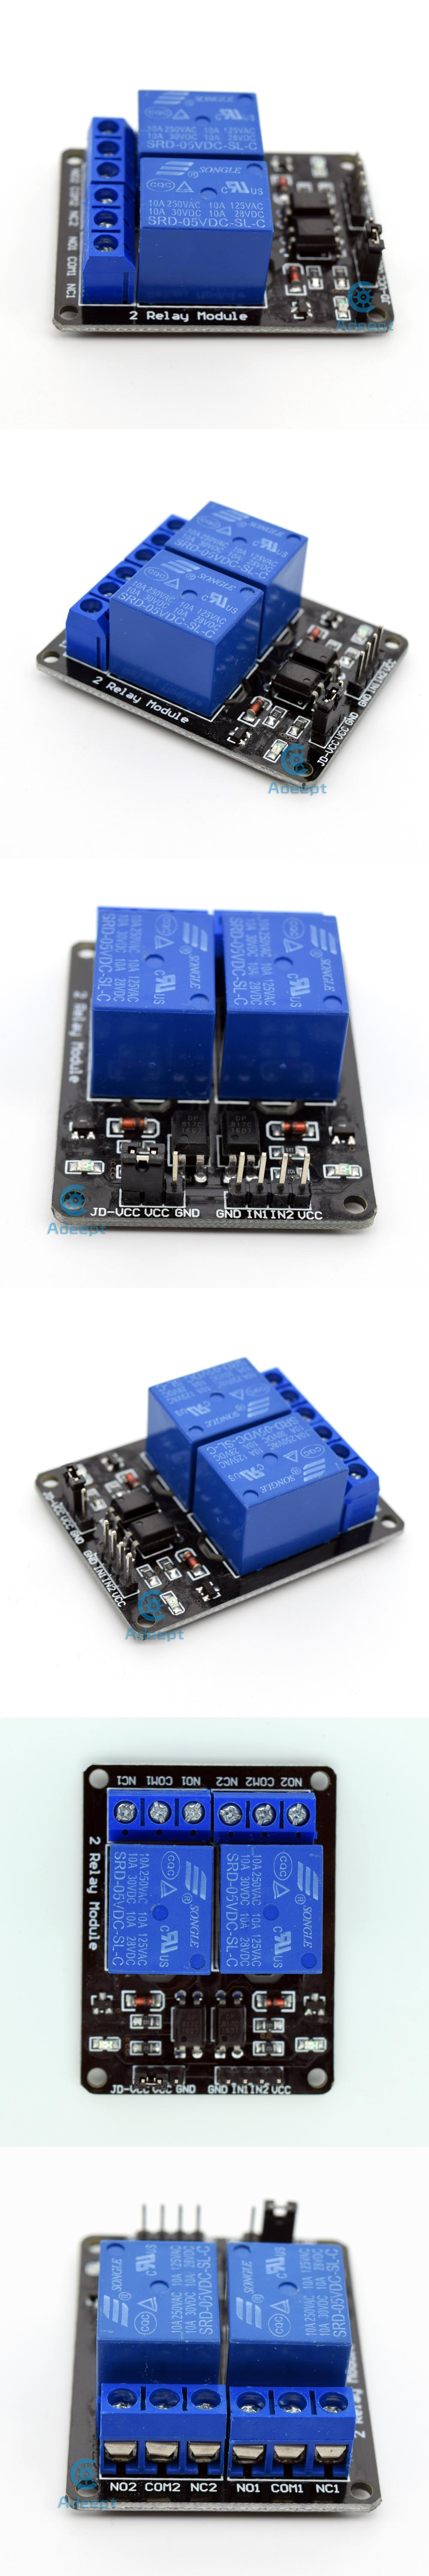 Adeept New 5v 2 Channel Relay Board Module For Arduino Raspberry Pi Arm Avr Dsp